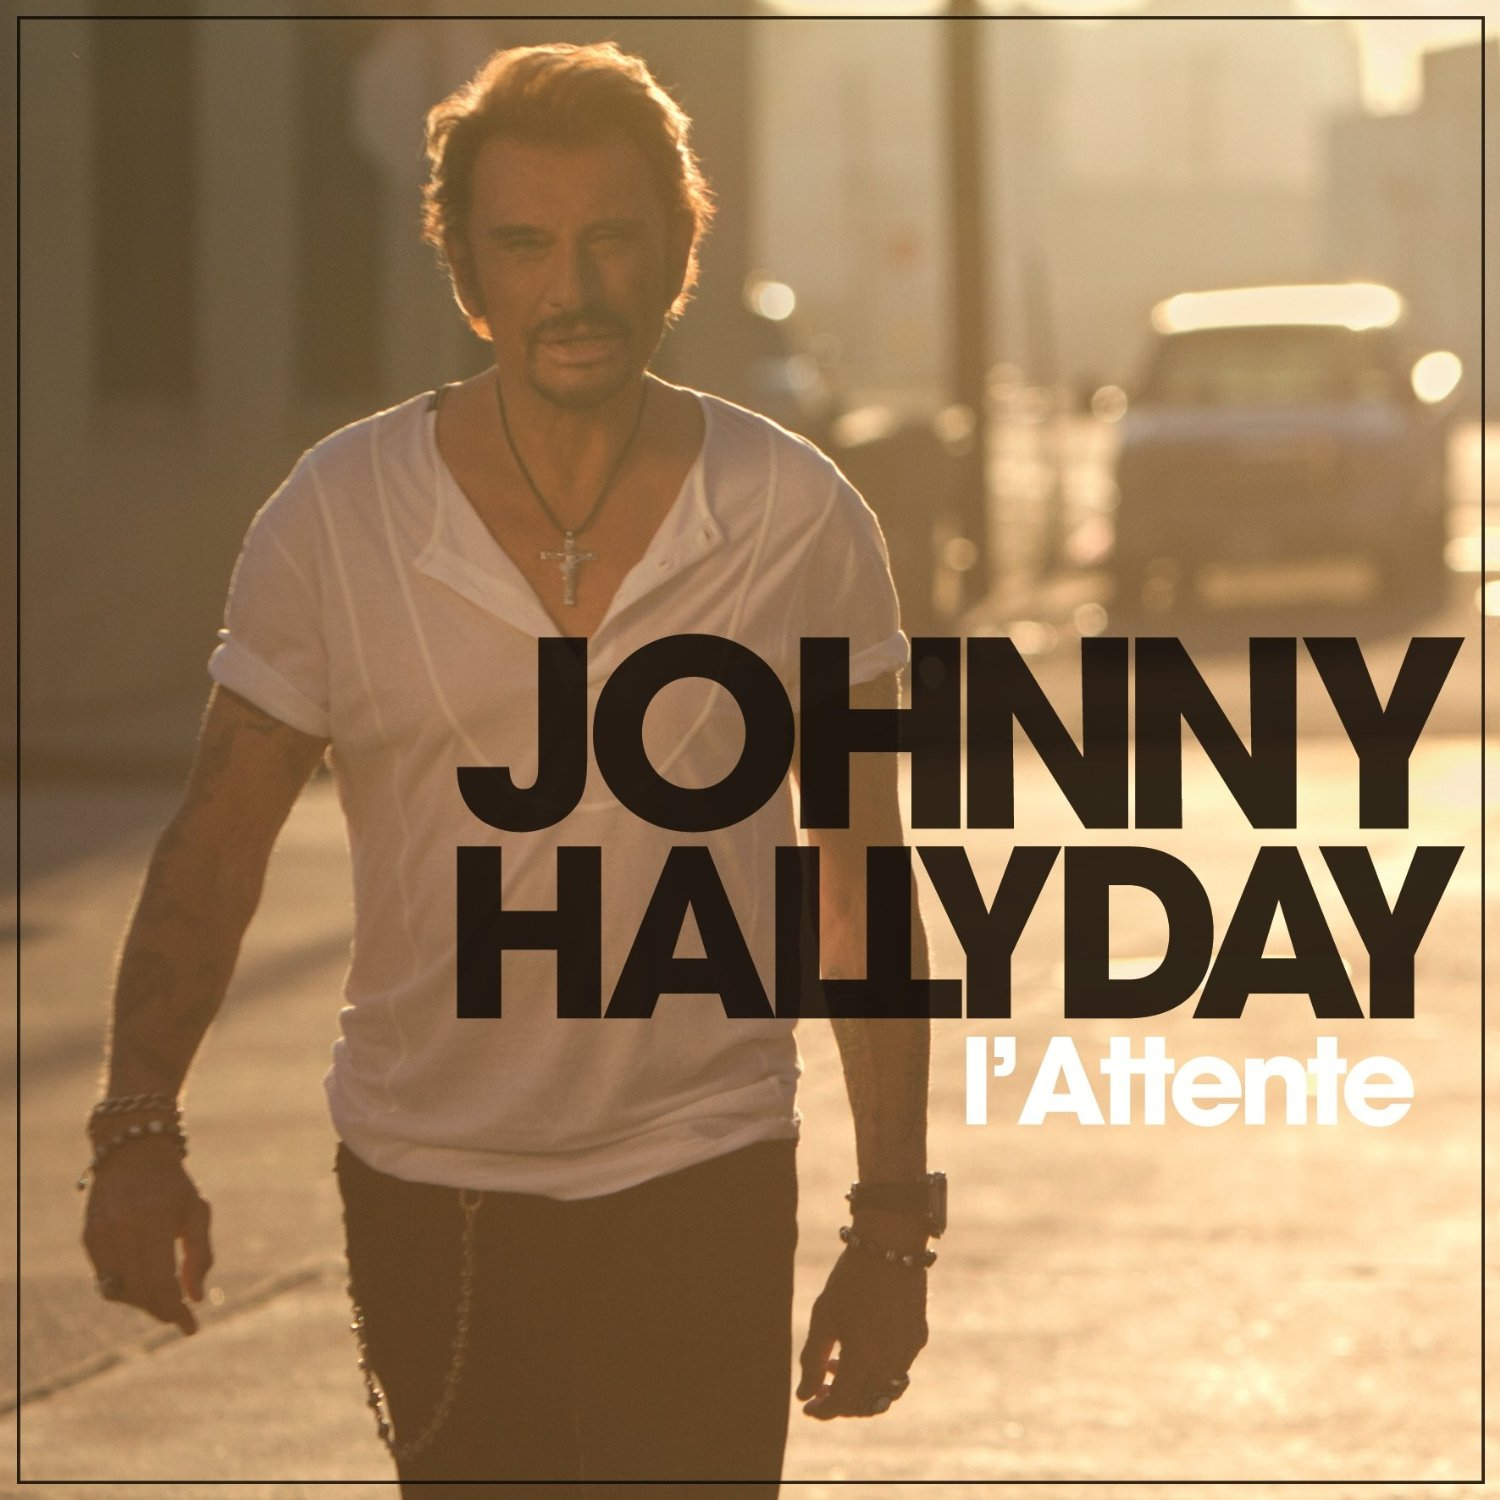 Johnny hallyday la hauteur de l 39 attente culture - Housse de couette johnny hallyday ...